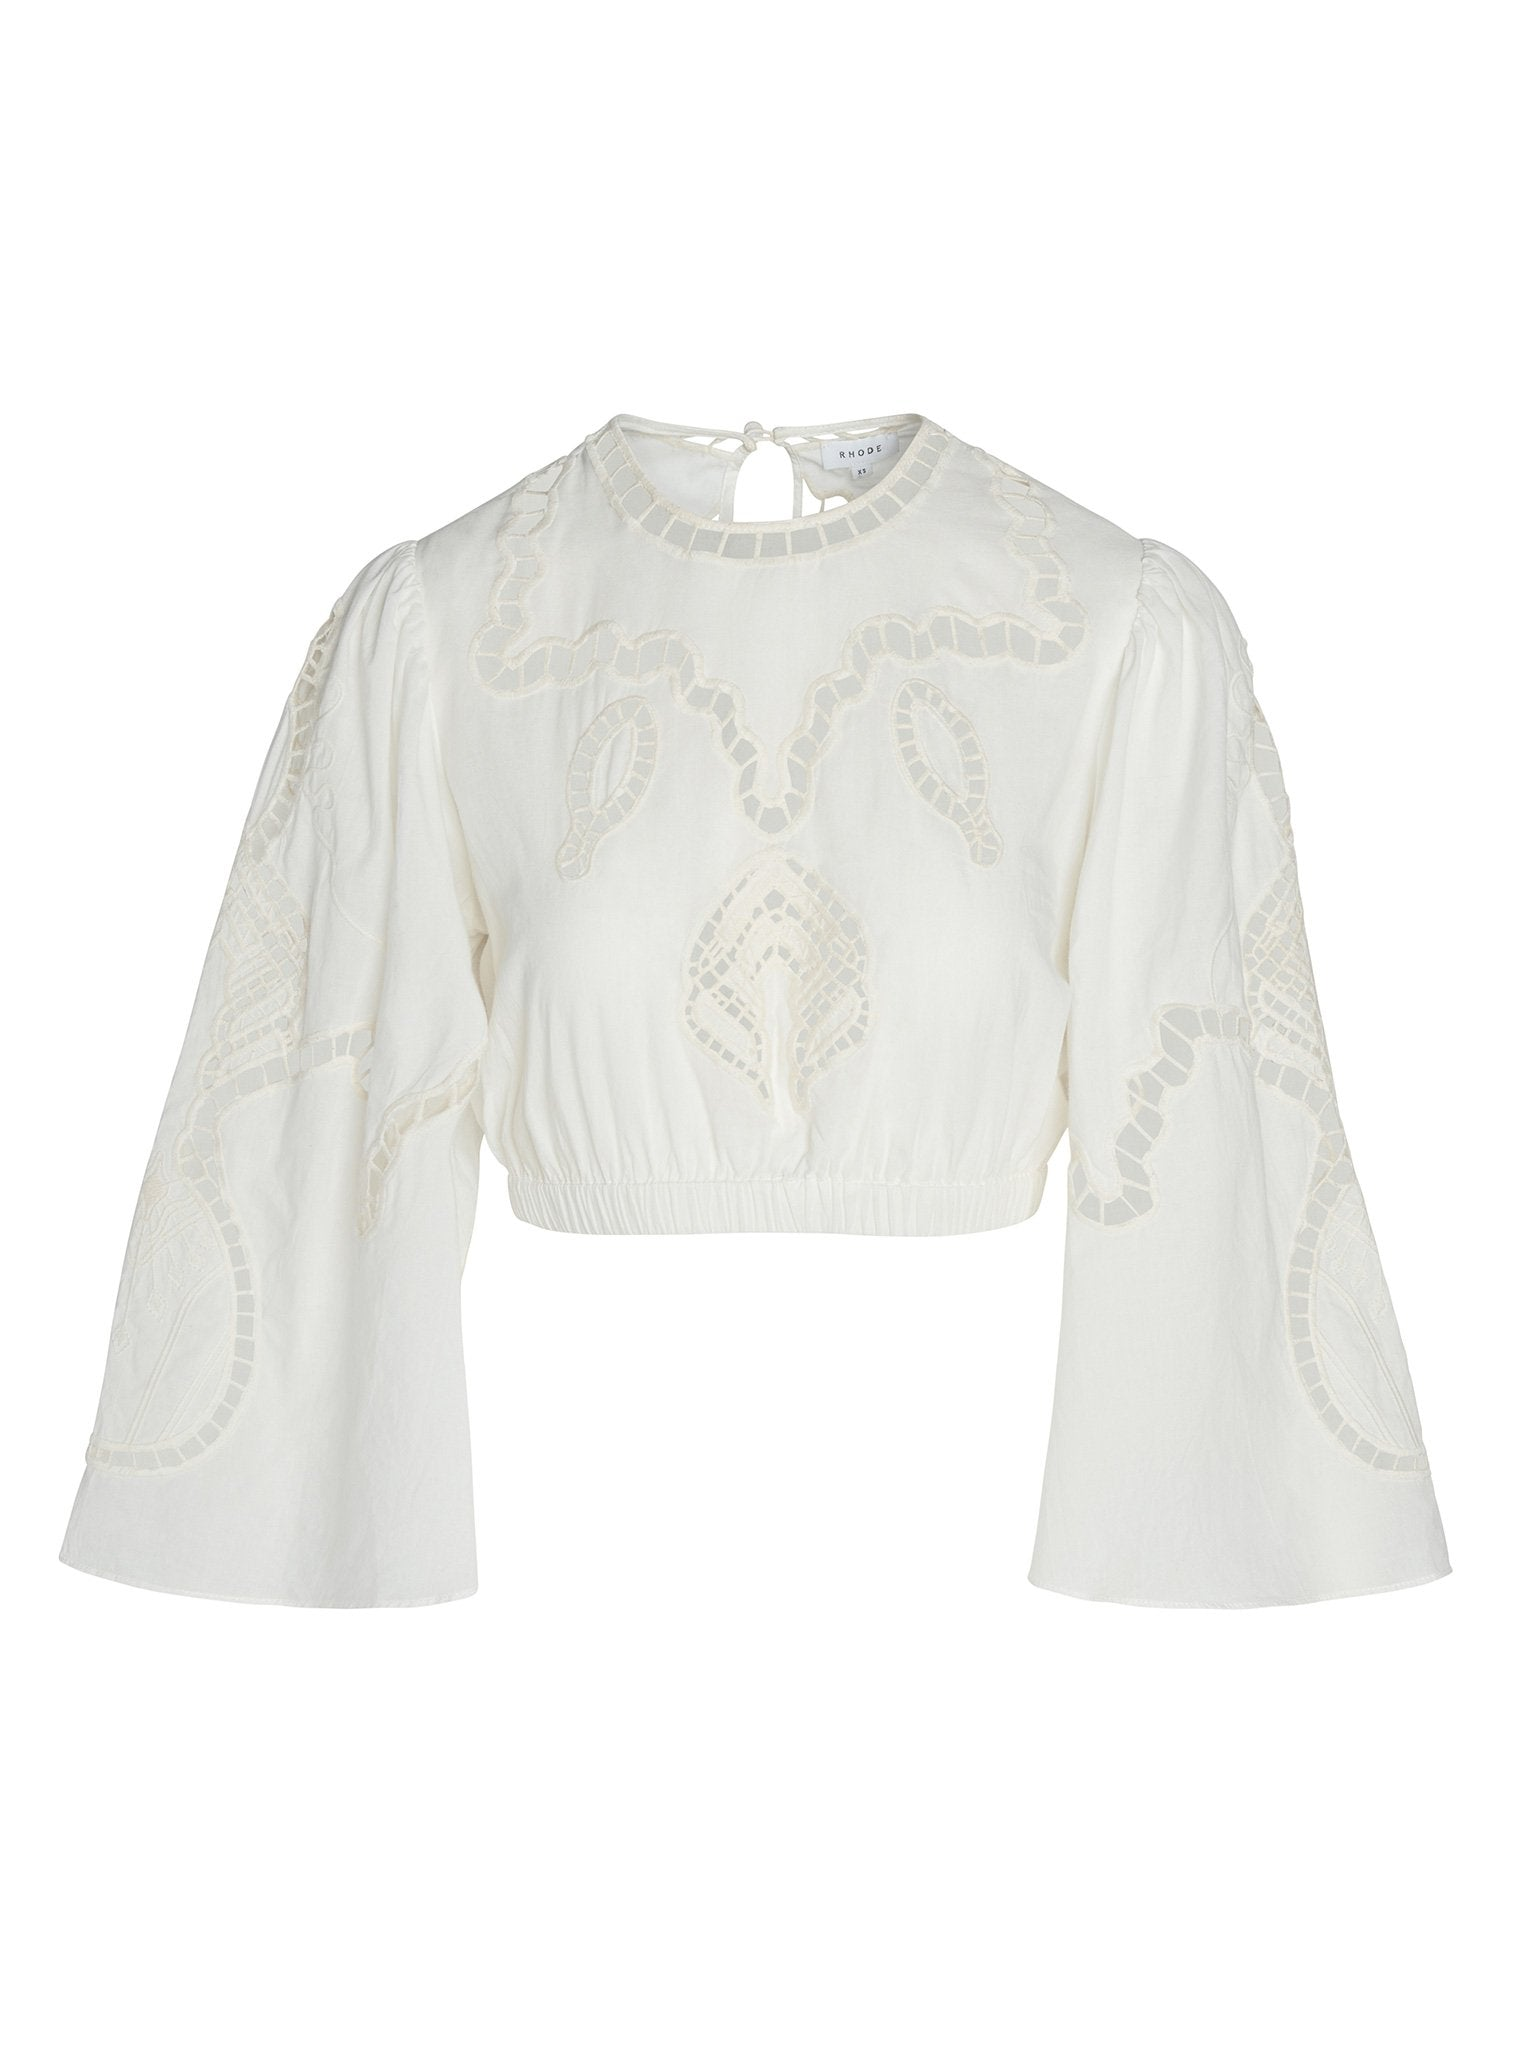 Casper Top | Ivory Embroidery